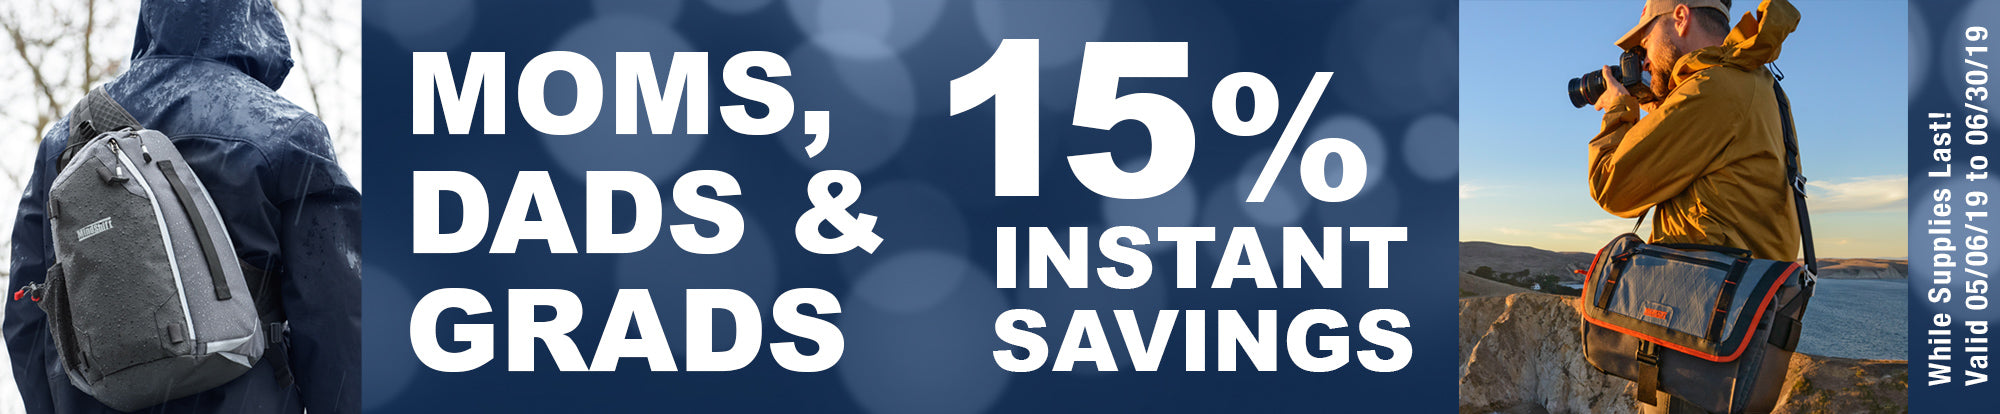 MOMS, DADS AND GRADS — INSTANT SAVINGS!